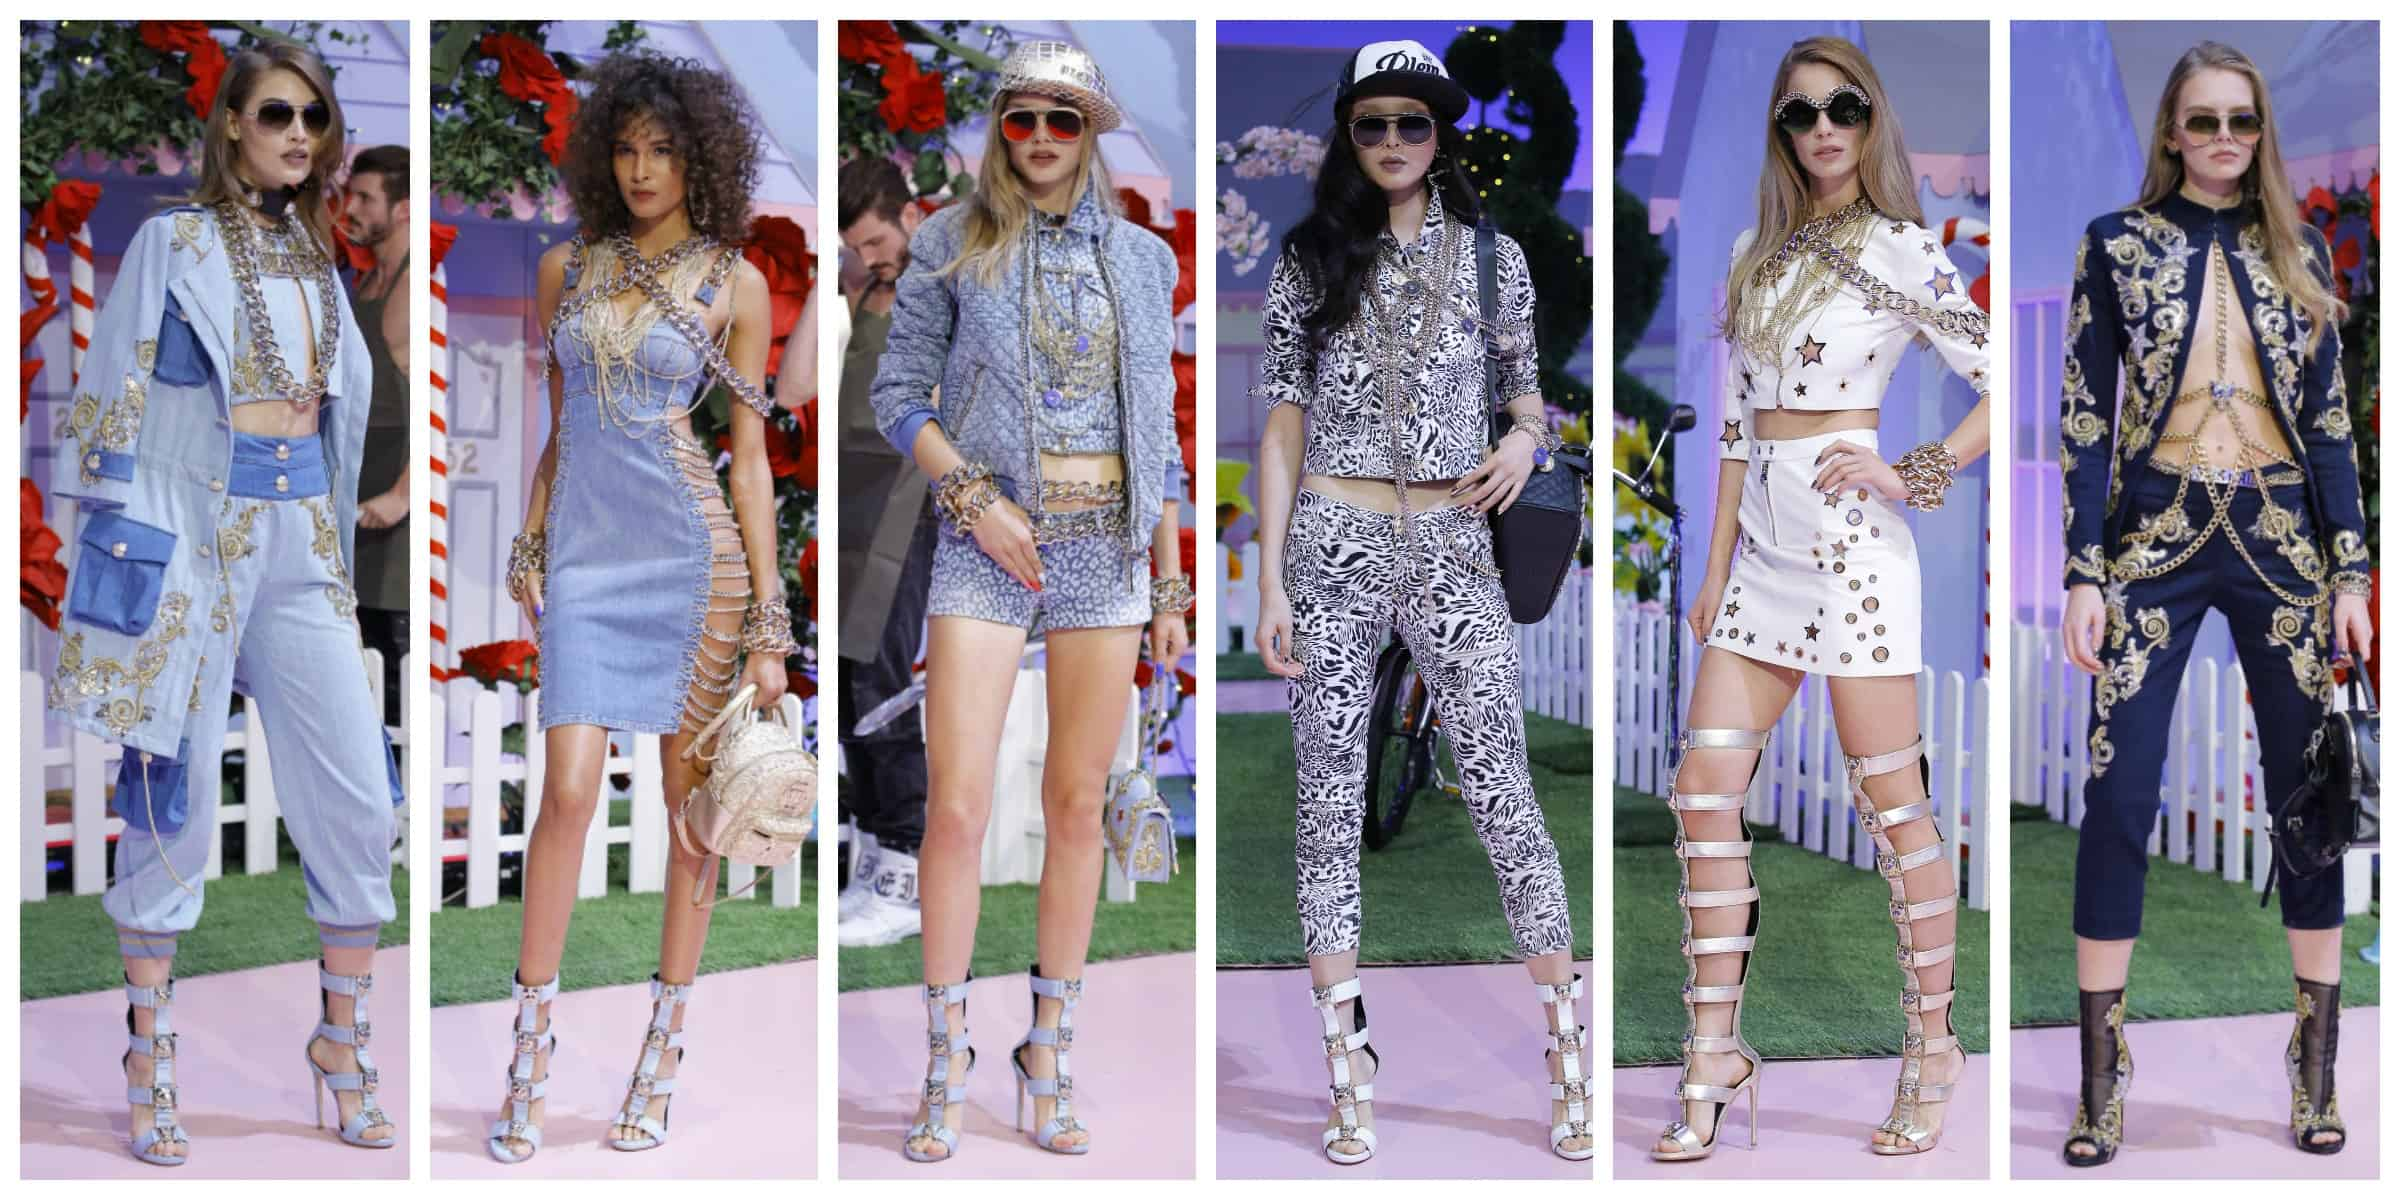 Phillip Plein - Milan Fashion Week Spring 2017